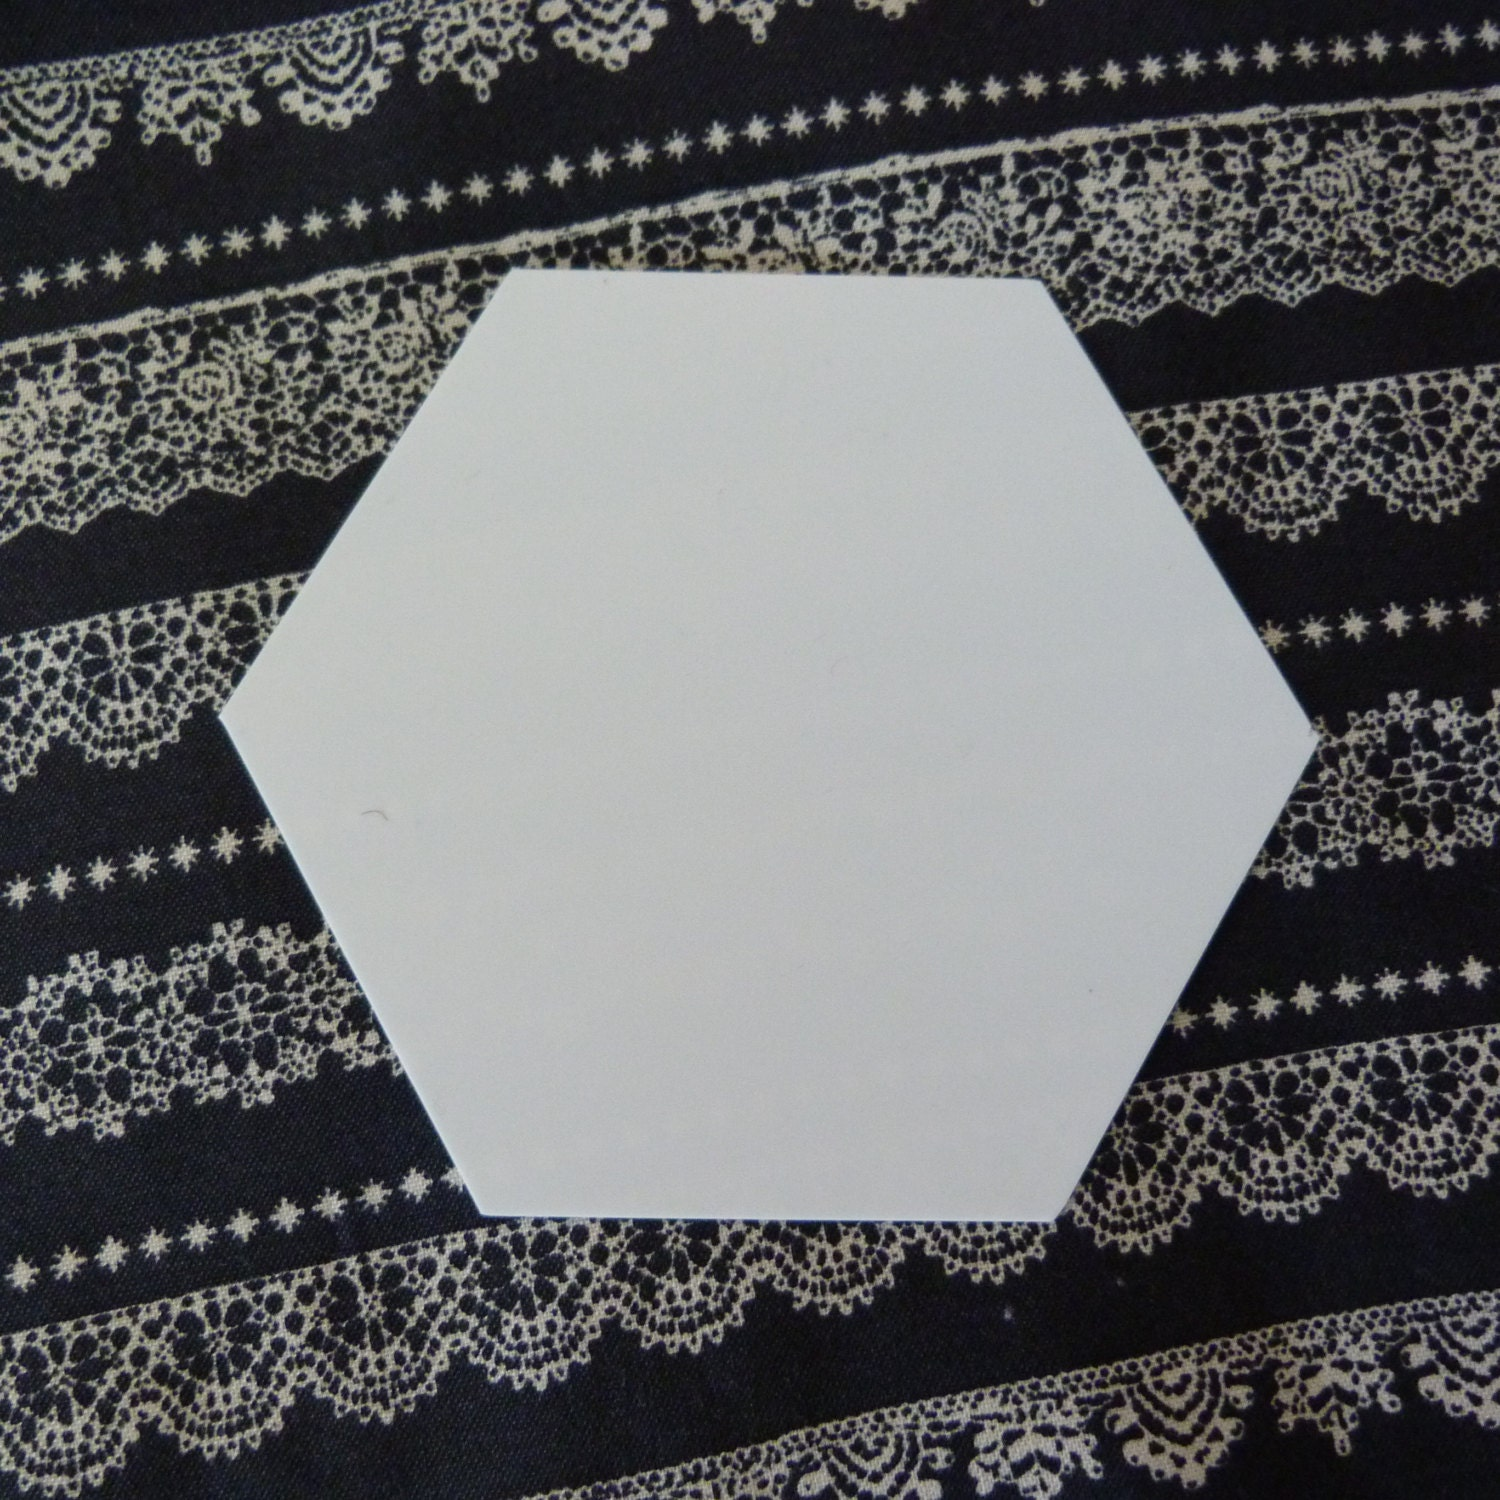 Hexagon quilt template plastic 28 images hexagon quilt template hexagon quilt template plastic by plastic hexagon quilt template for paper piecing and maxwellsz